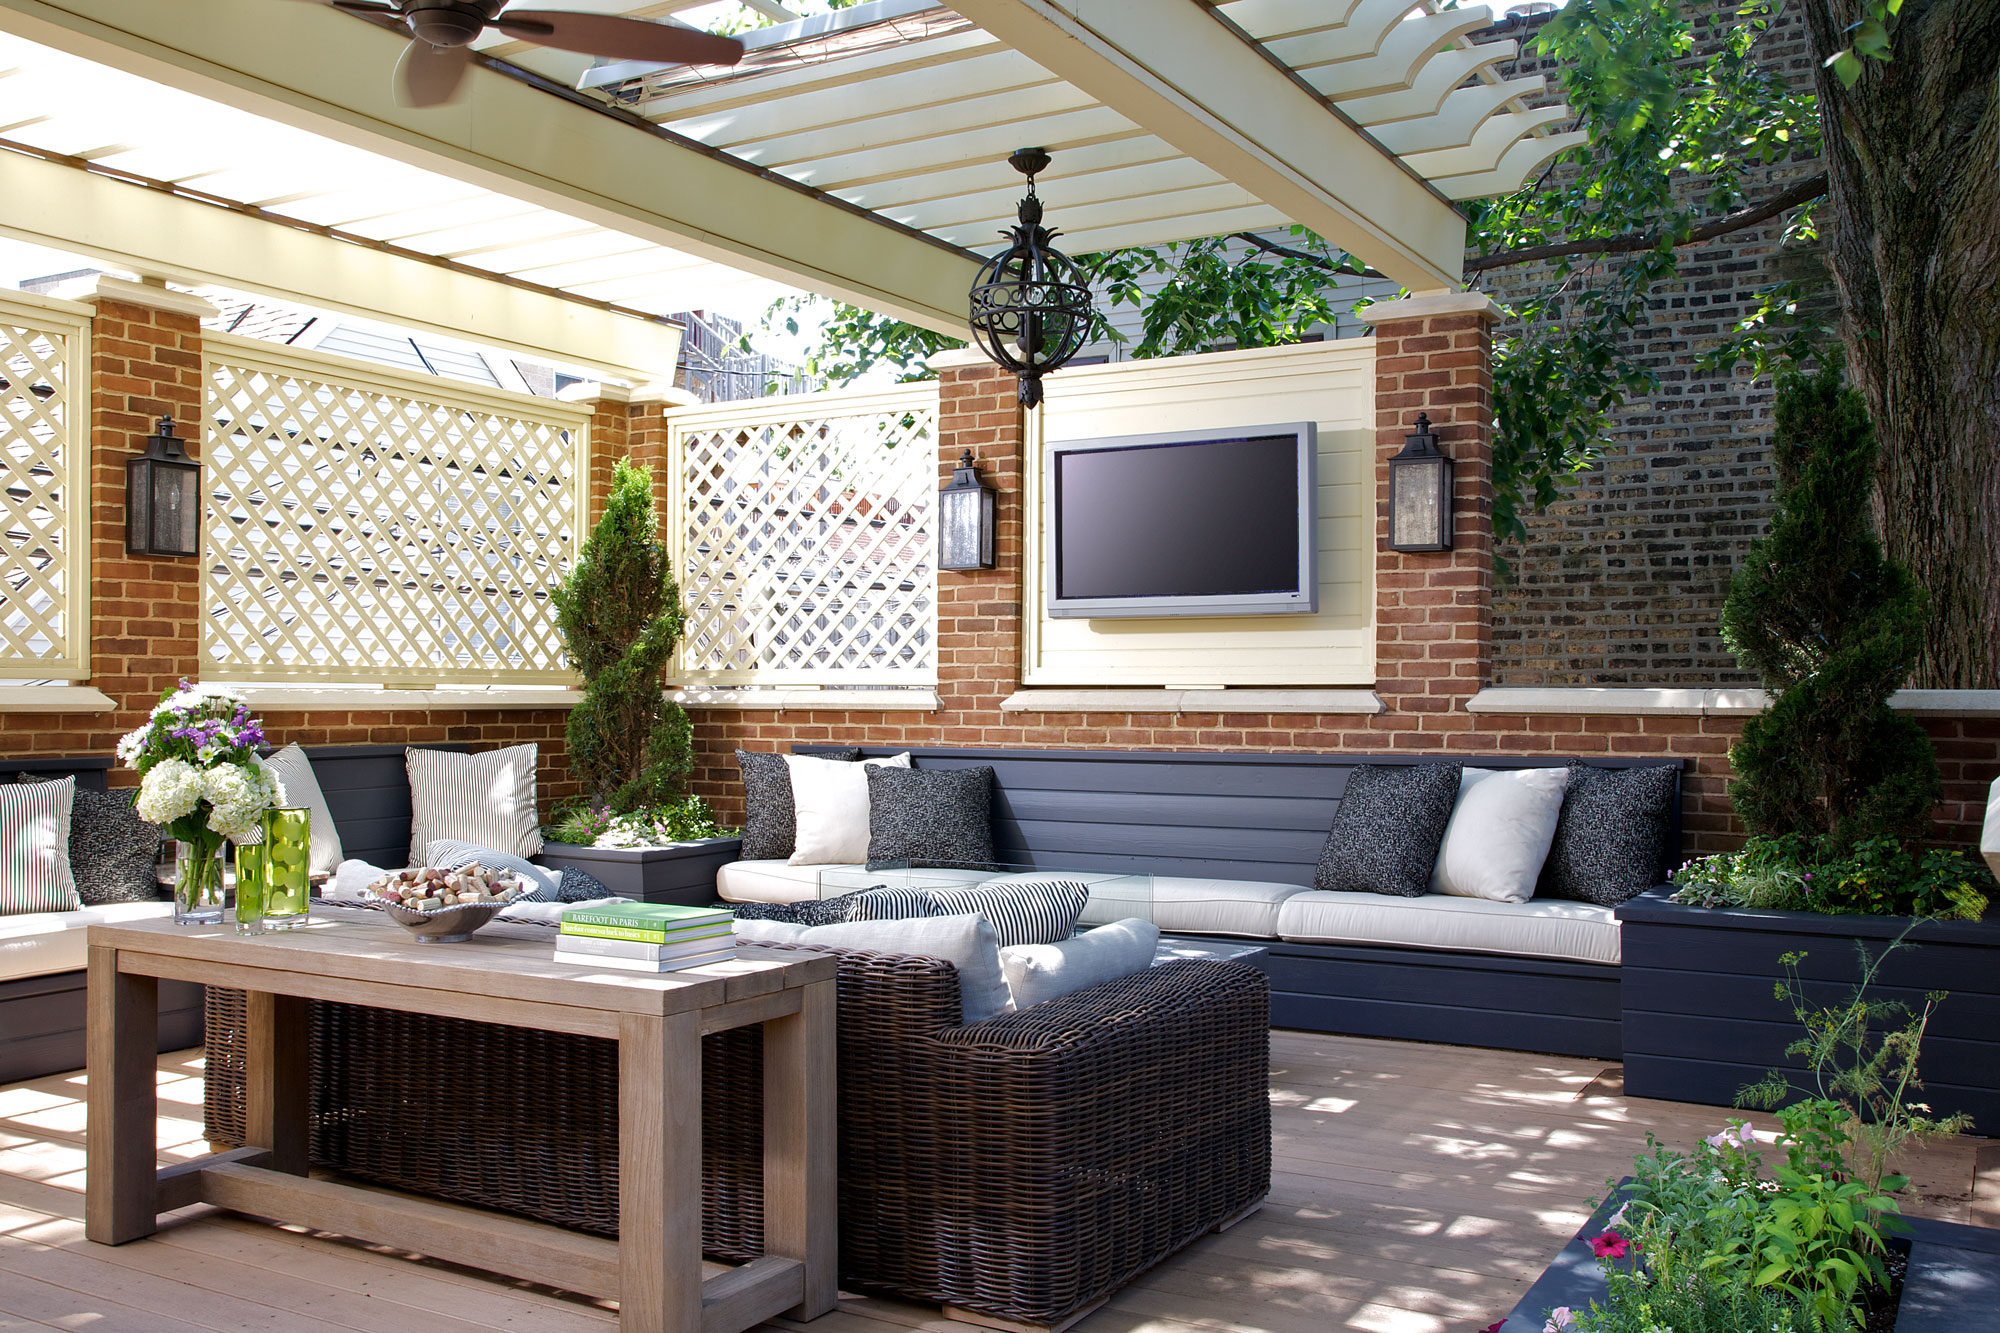 chicago luxury home outdoor living area with tv and couches